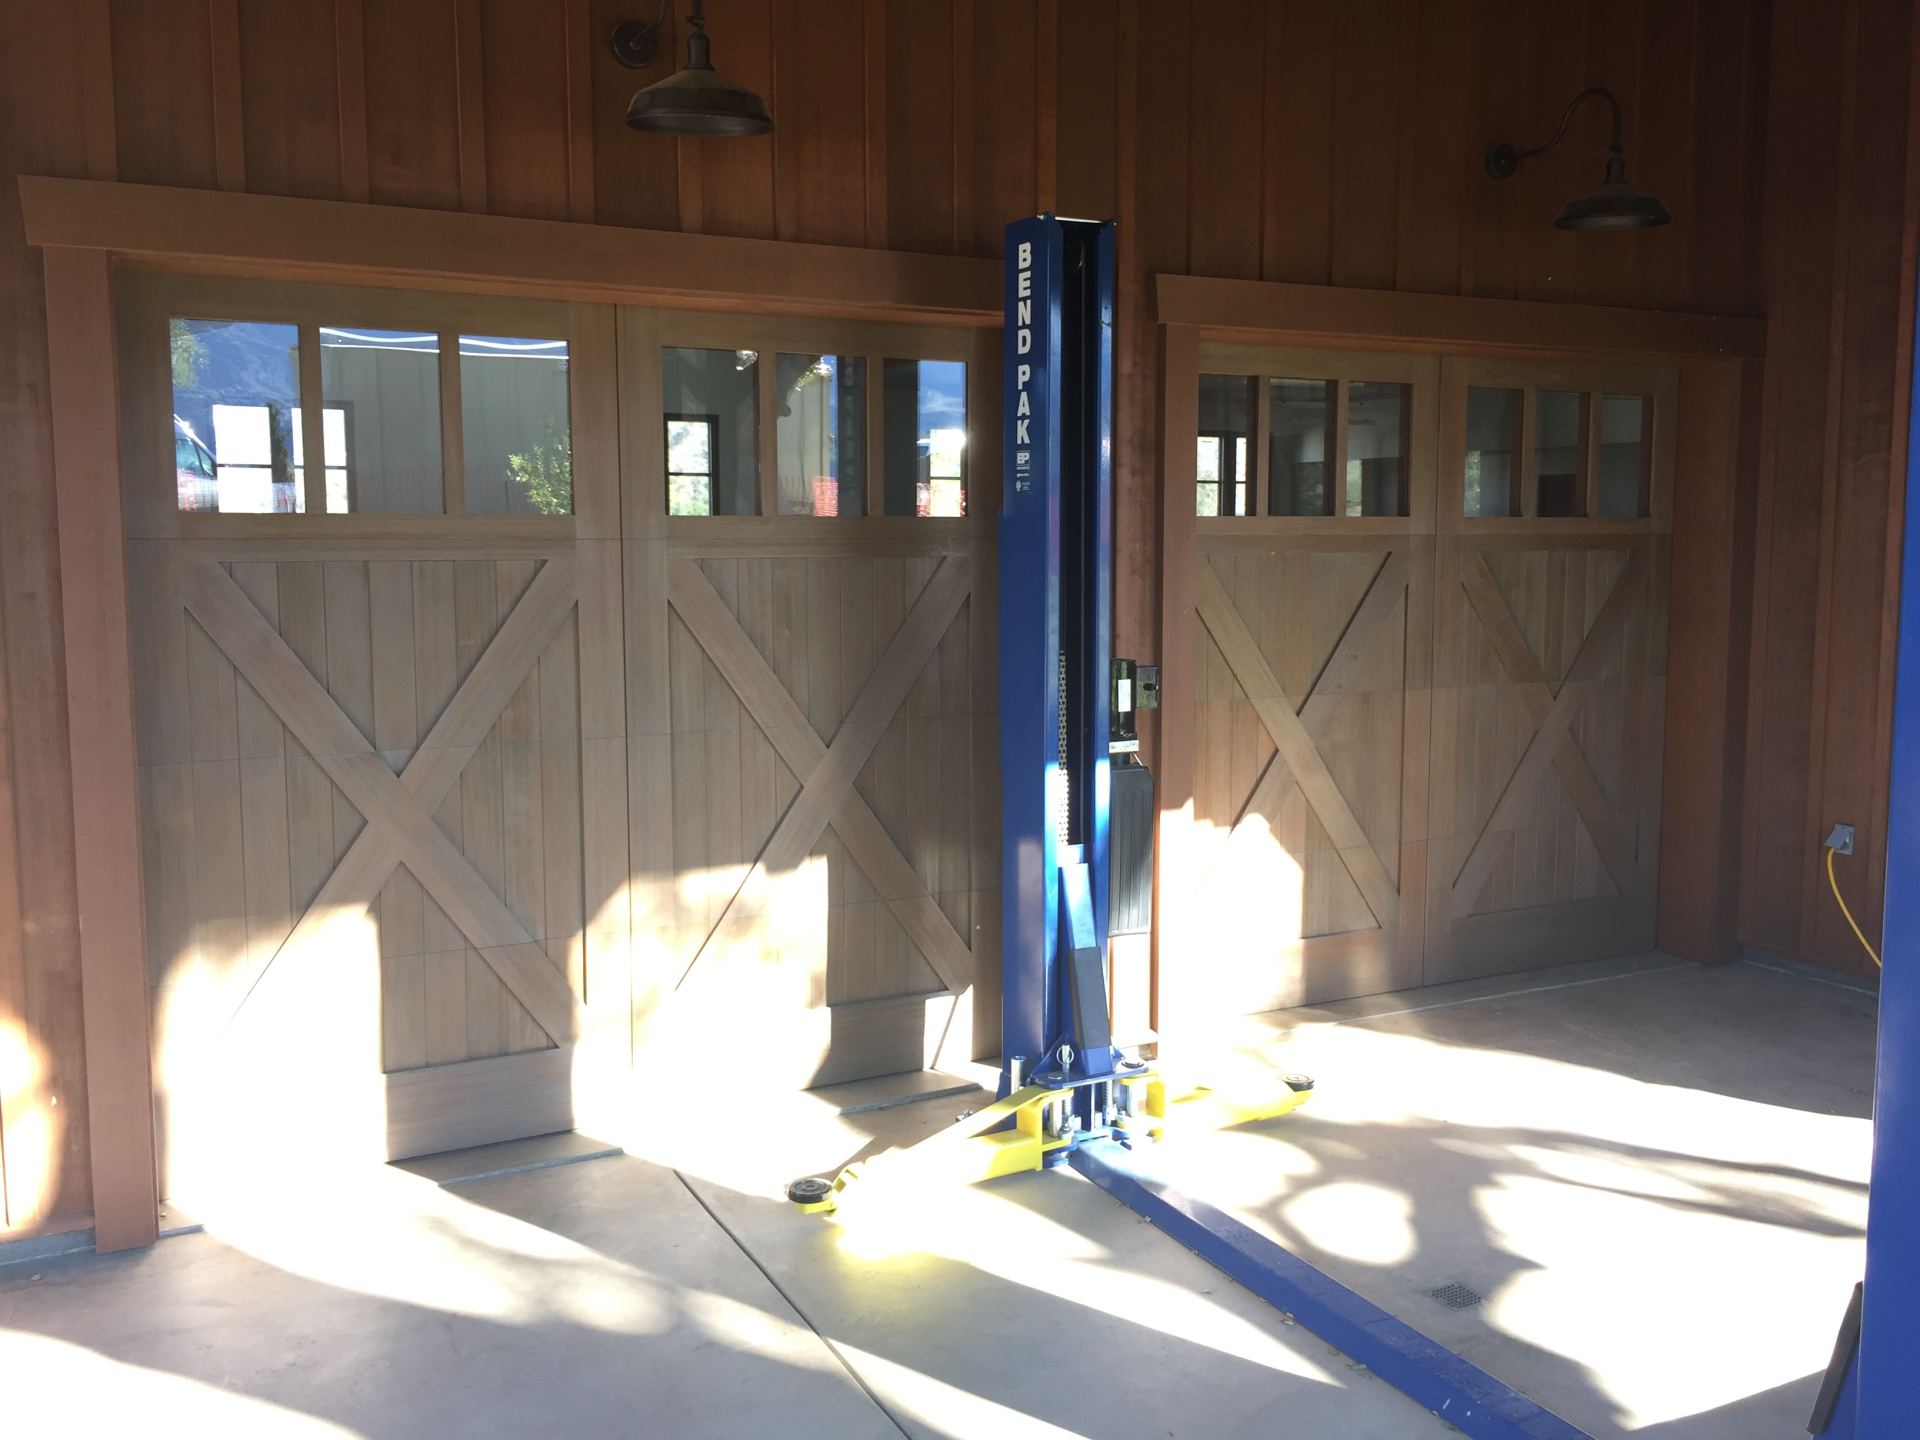 Carriage House Doors custom wood doors with custom track